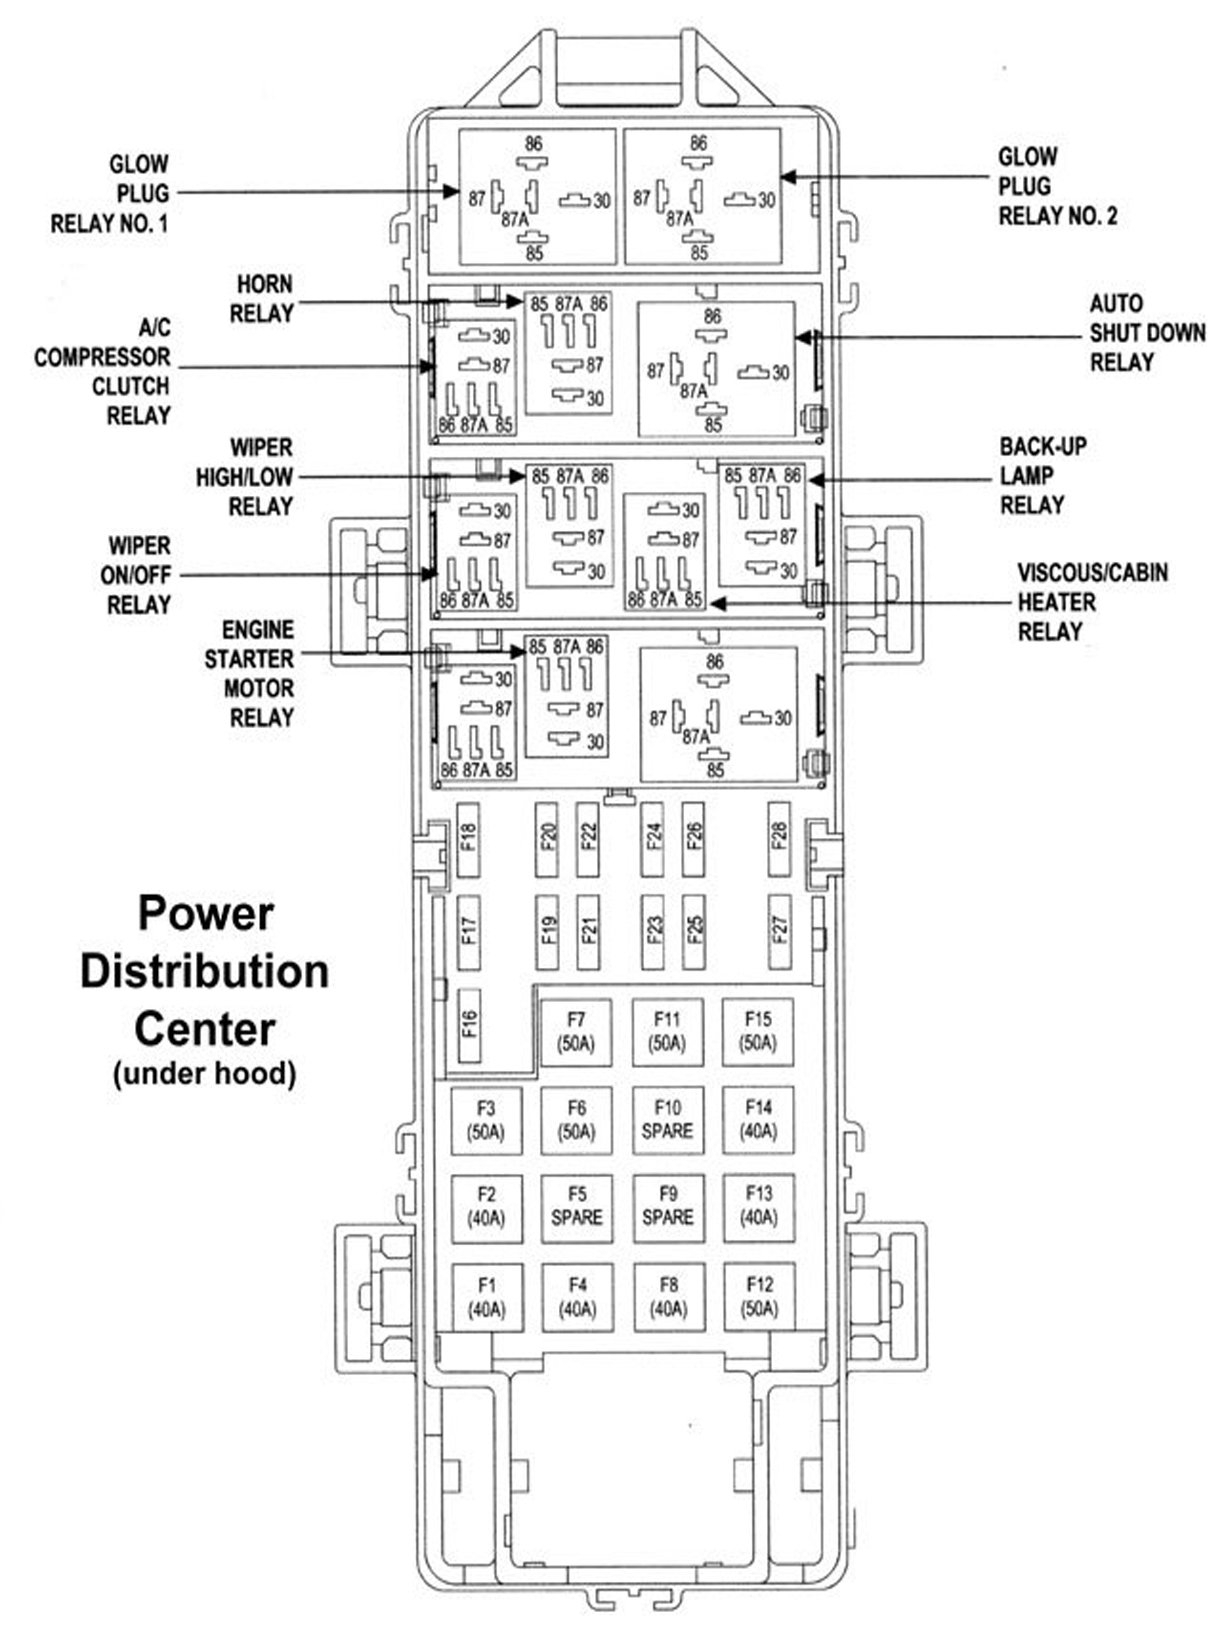 jeep grand cherokee wj 1999 to 2004 fuse box diagram cherokeeforum within 1999 jeep grand cherokee parts diagram jeep grand cherokee wj 1999 to 2004 fuse box diagram wj fuse box diagram at edmiracle.co